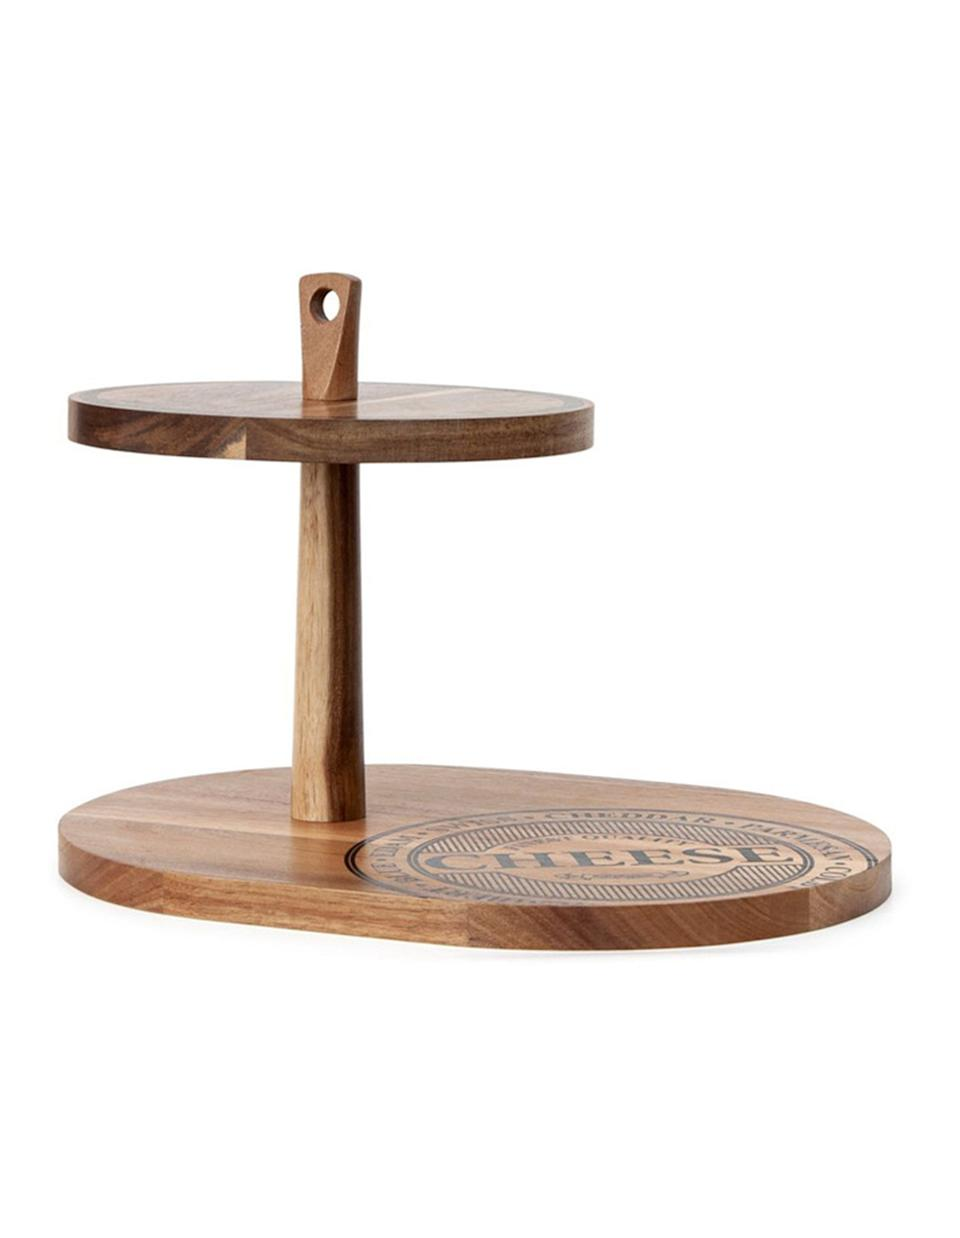 Salt&Pepper Fromage Serving Stand - 2 Tier, $49.97 from Myer. Photo: Myer.